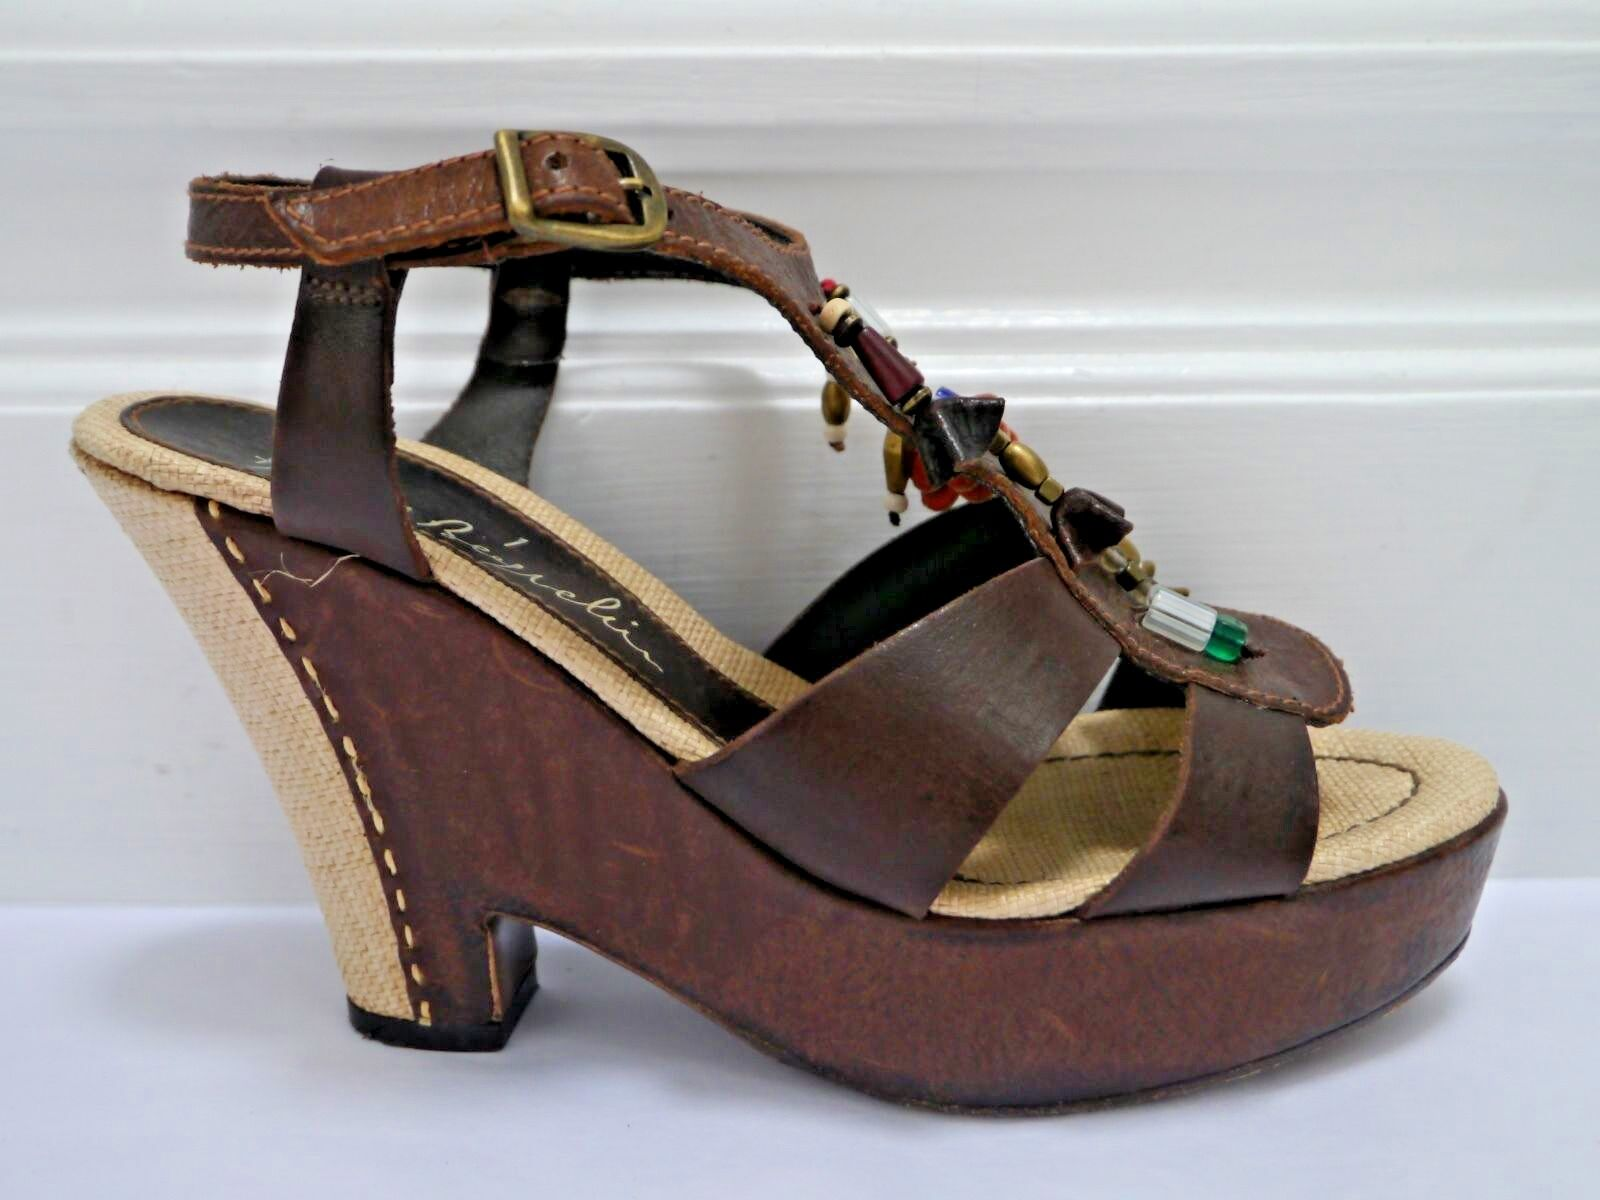 HENRY BEGUELIN brown leather beaded charm platform wedge wedge wedge sandals Italian size 37 8e8af3